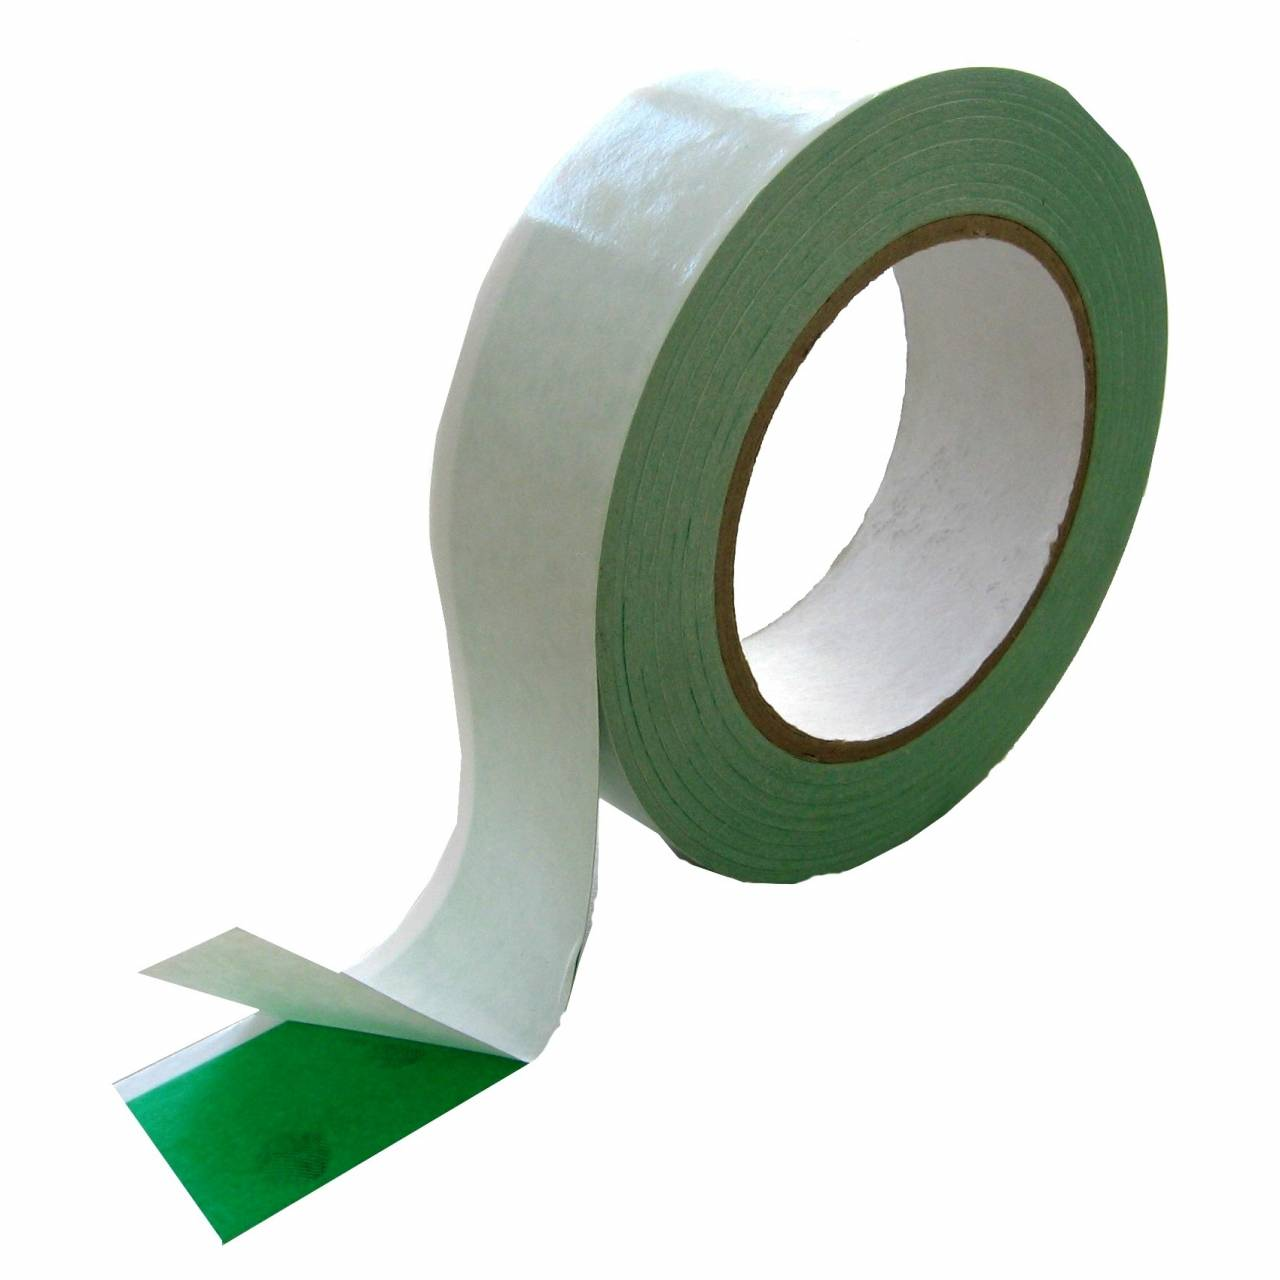 Double-Tape T022, grün-weiss 35 mm x 25 m / Rolle